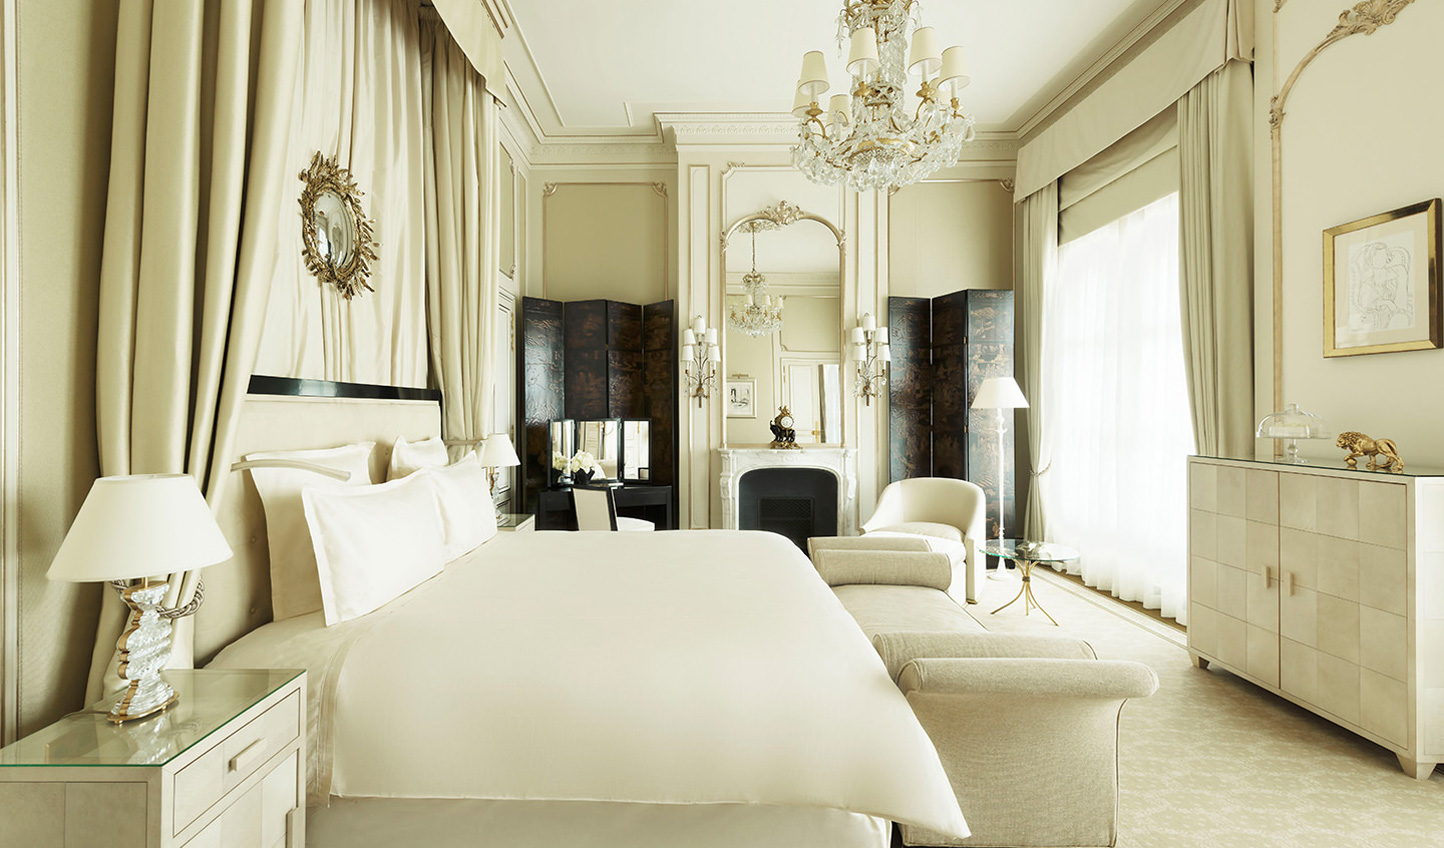 The effortlessly stylish Chanel suite, designed and lived in by Coco Chanel herself